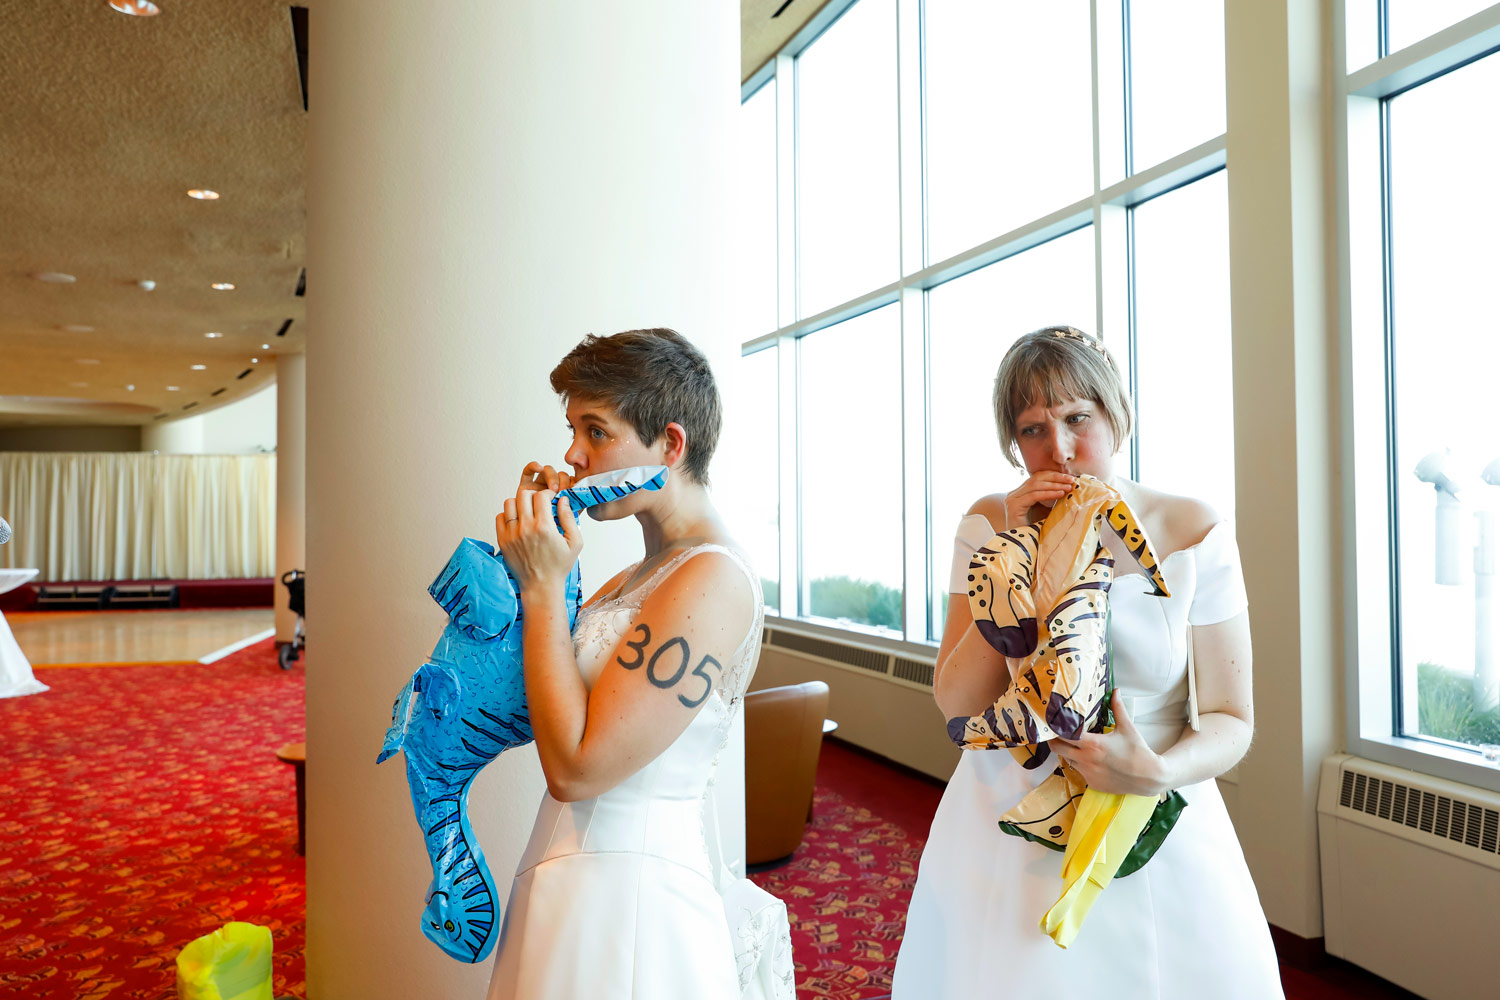 monona-terrace-wedding-photographer-lgbtq-same-sex-lesbian-gay-madison-wi-ruthie-hauge-photography.jpg